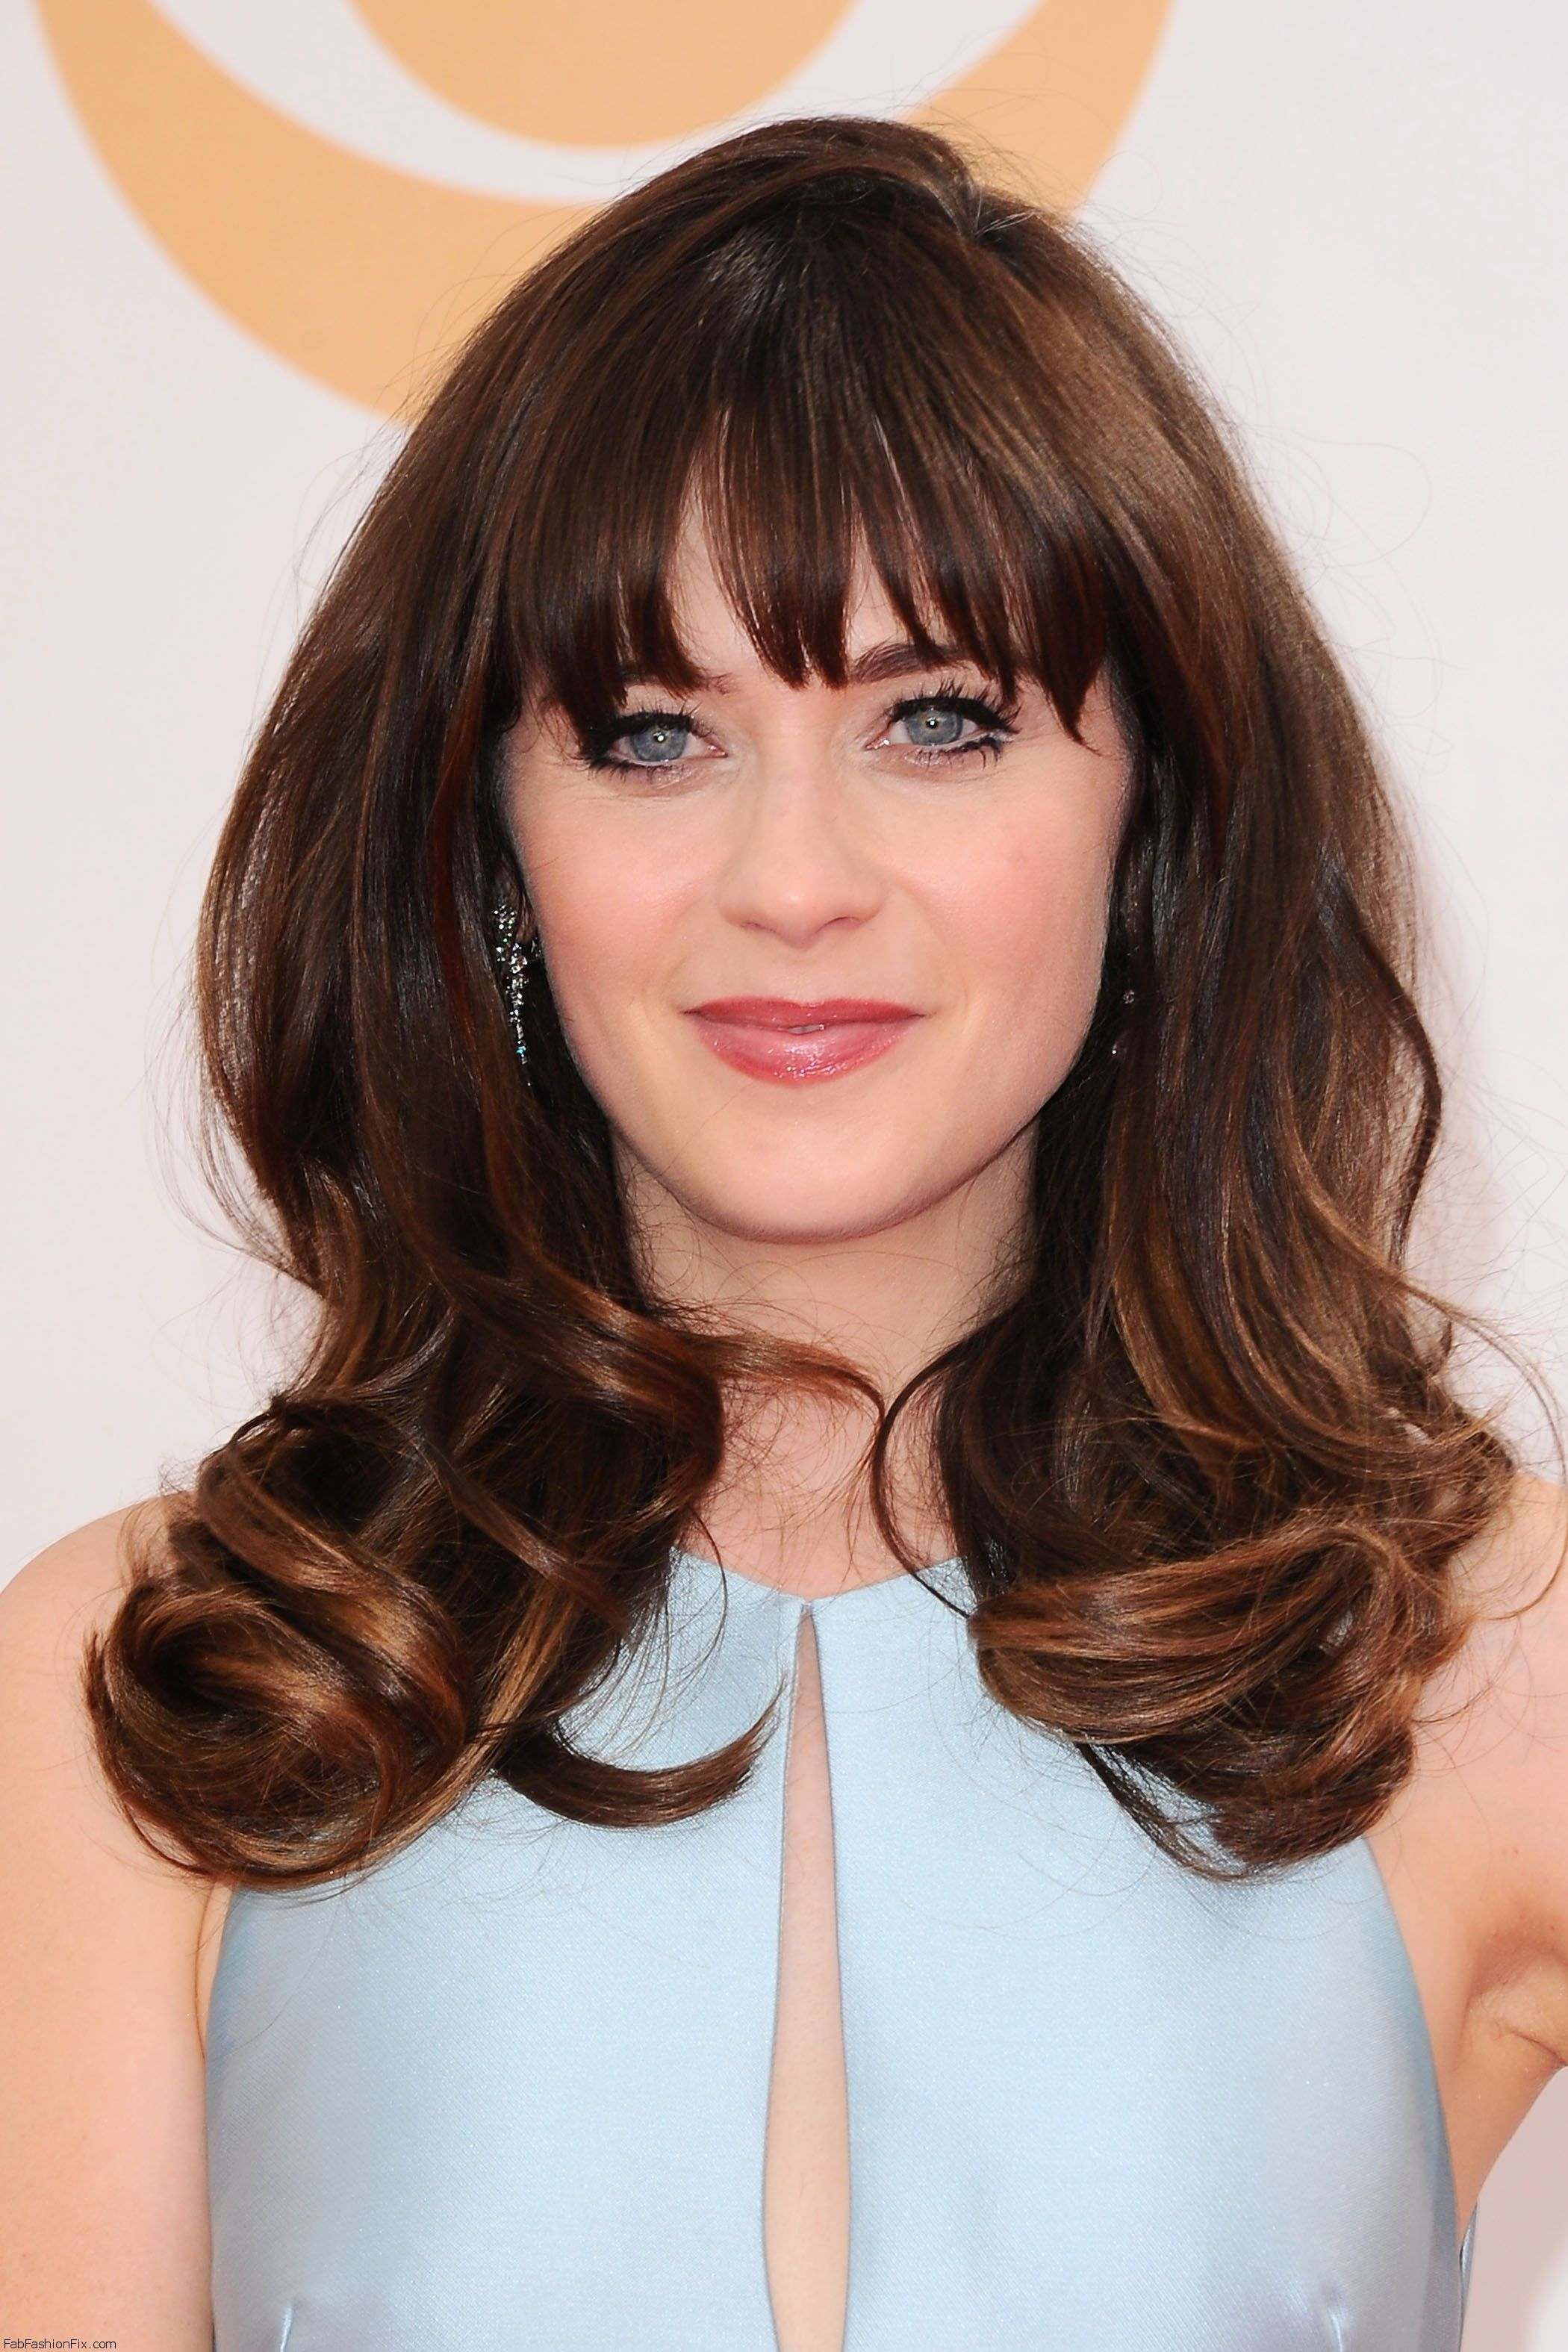 celebrity-paradise.com-The Elder-zooey _11_